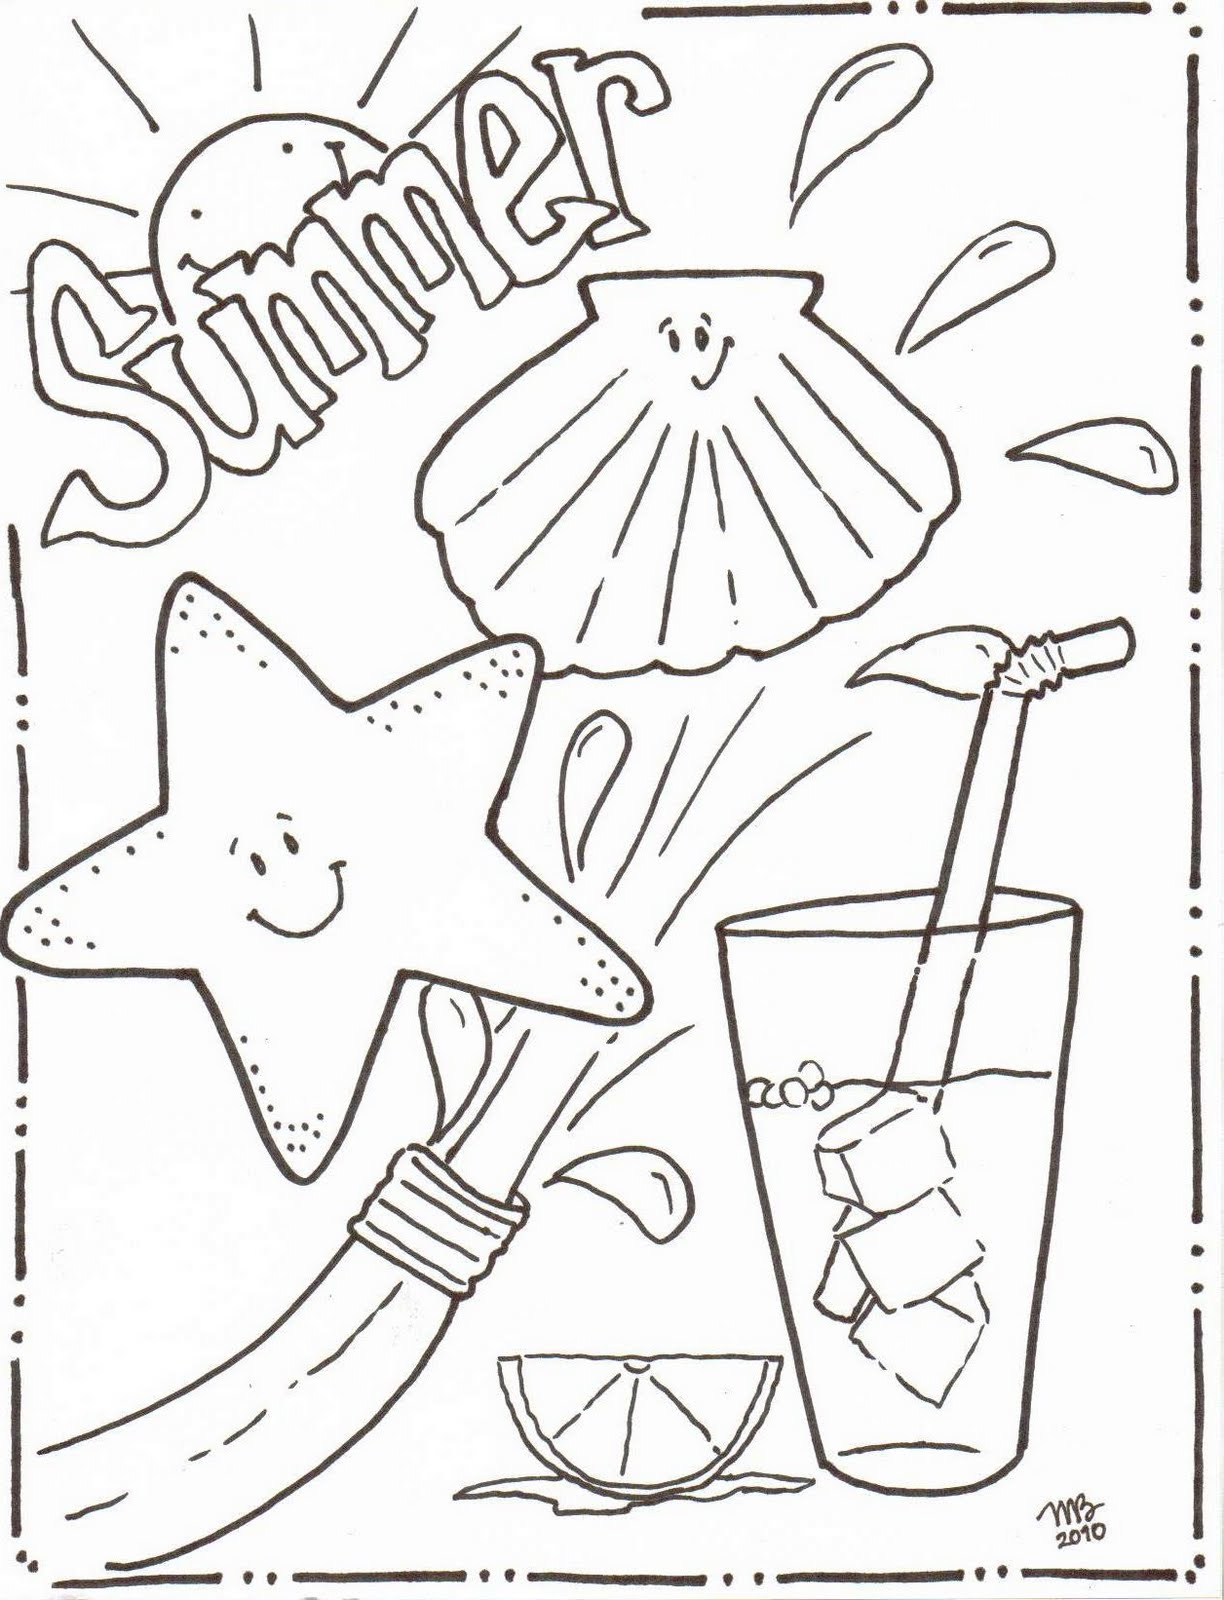 Summer coloring pages original mkb designs